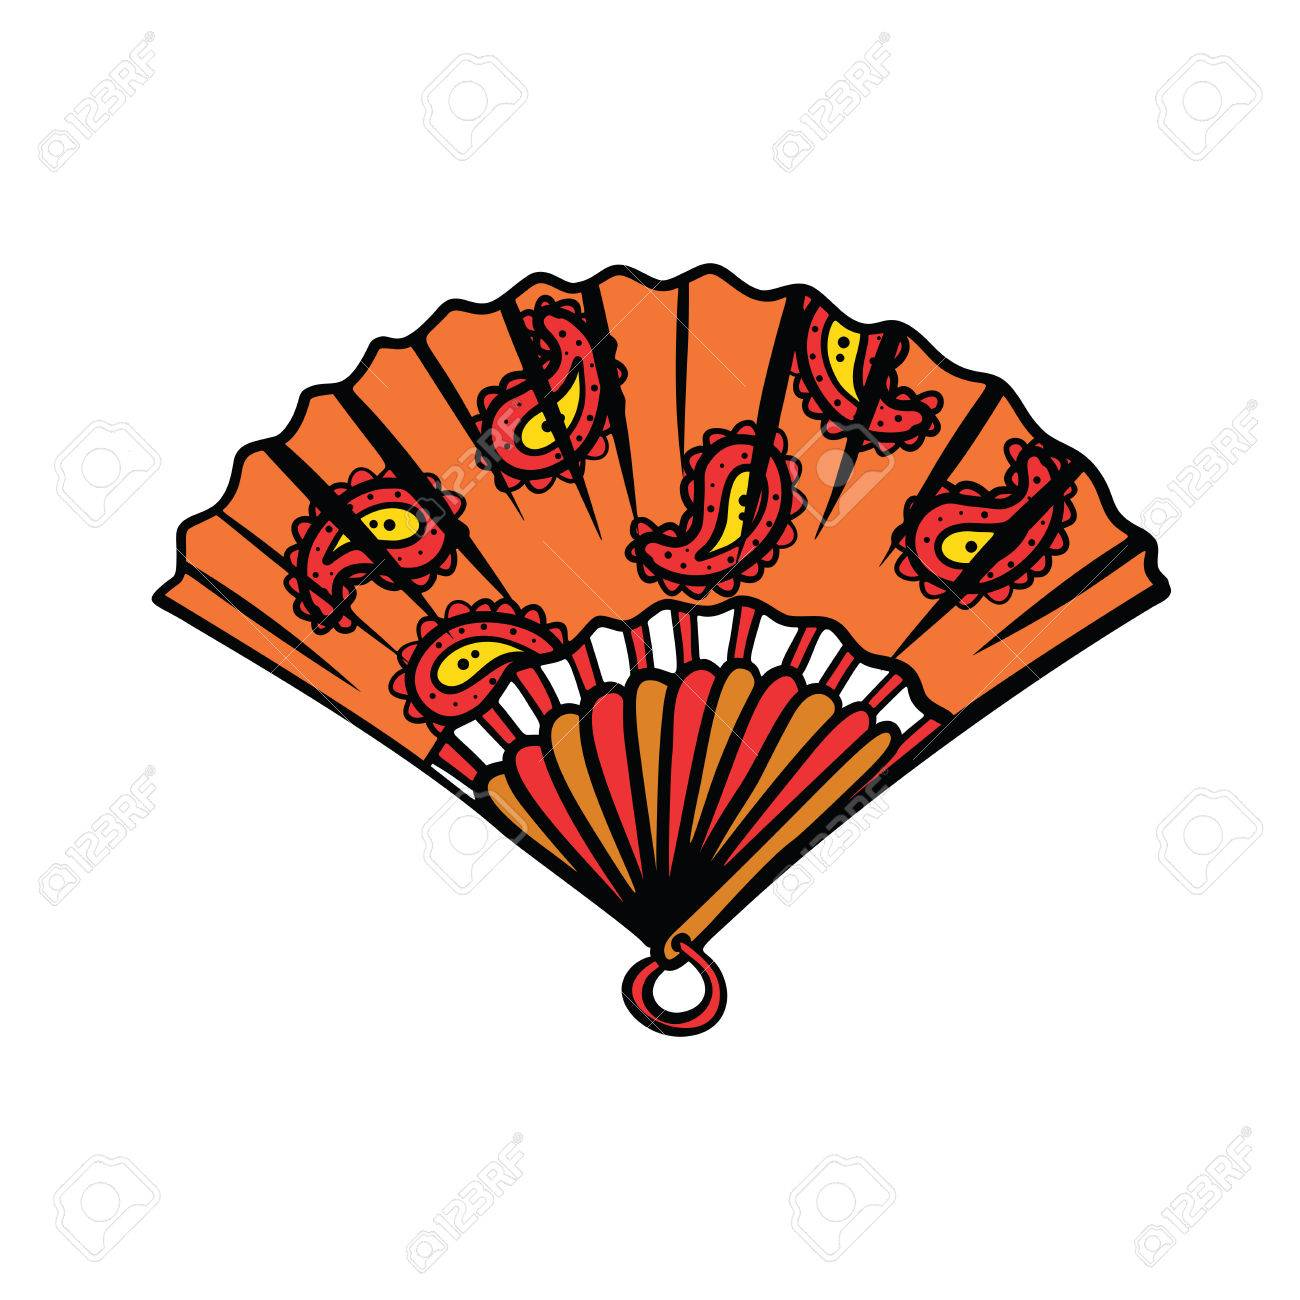 1300x1300 Paper Fan Illustration Isolated On White Background. Comic Book